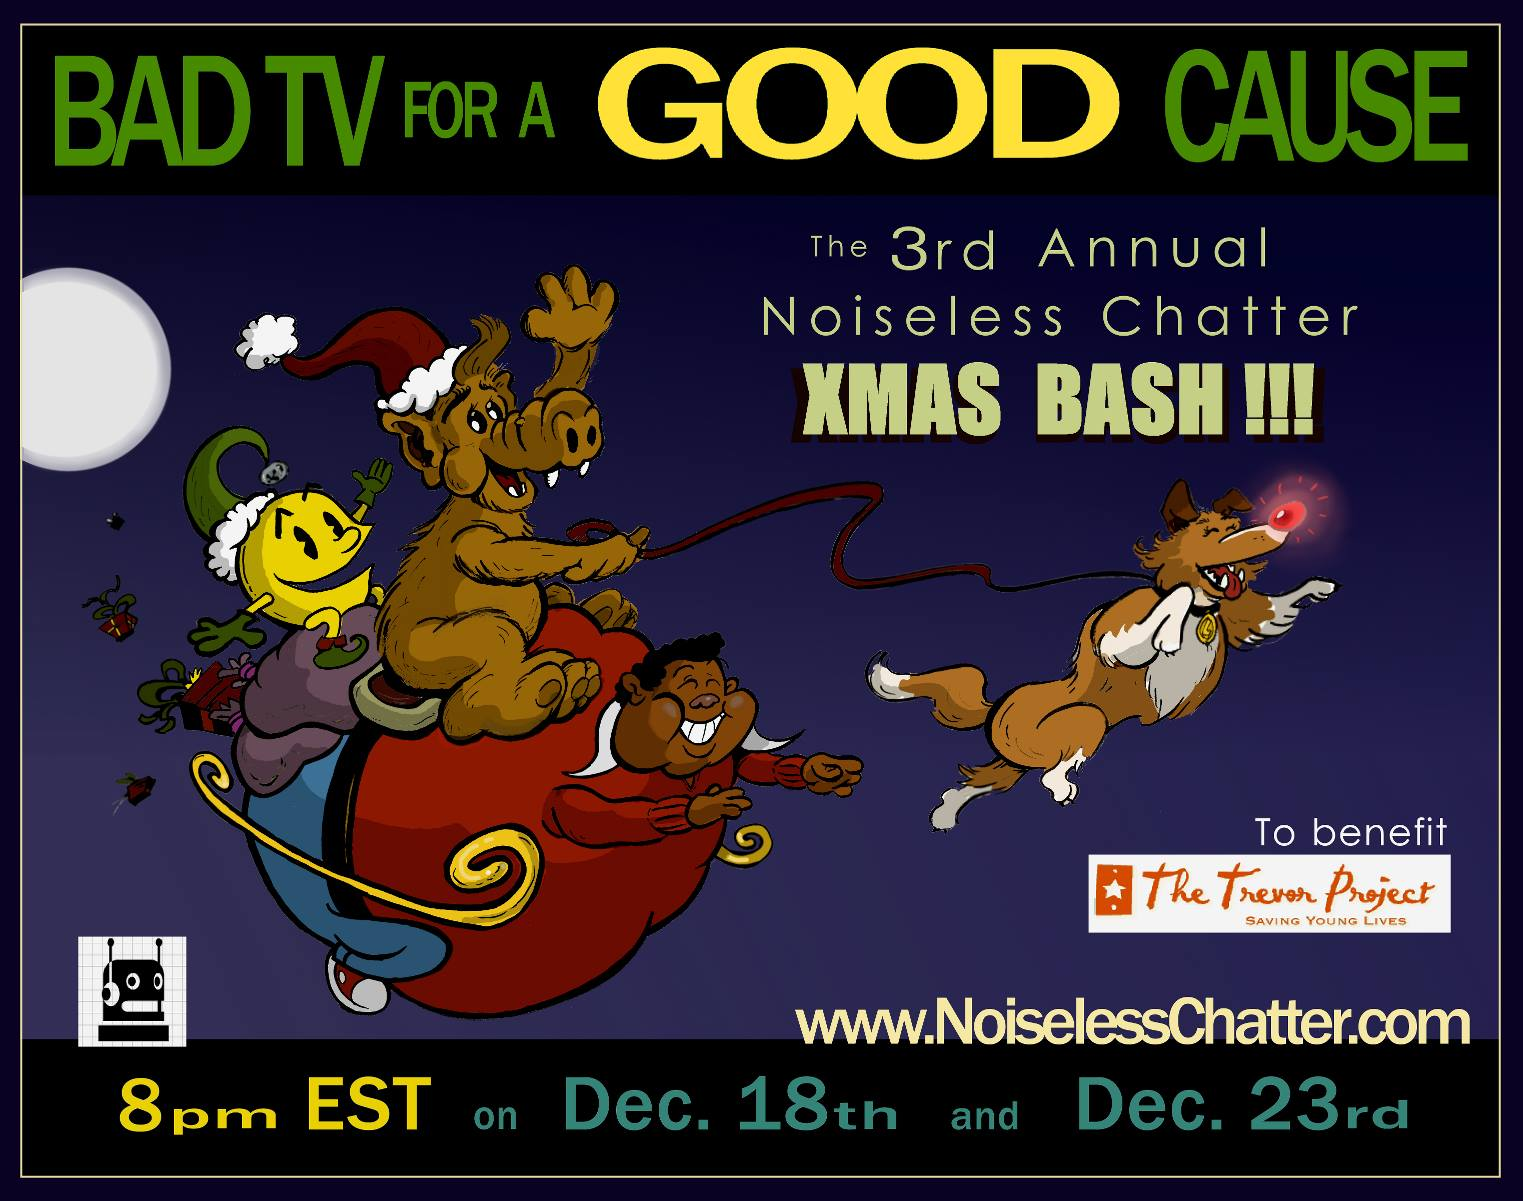 The 3rd Annual Noiseless Chatter Xmas Bash!!!